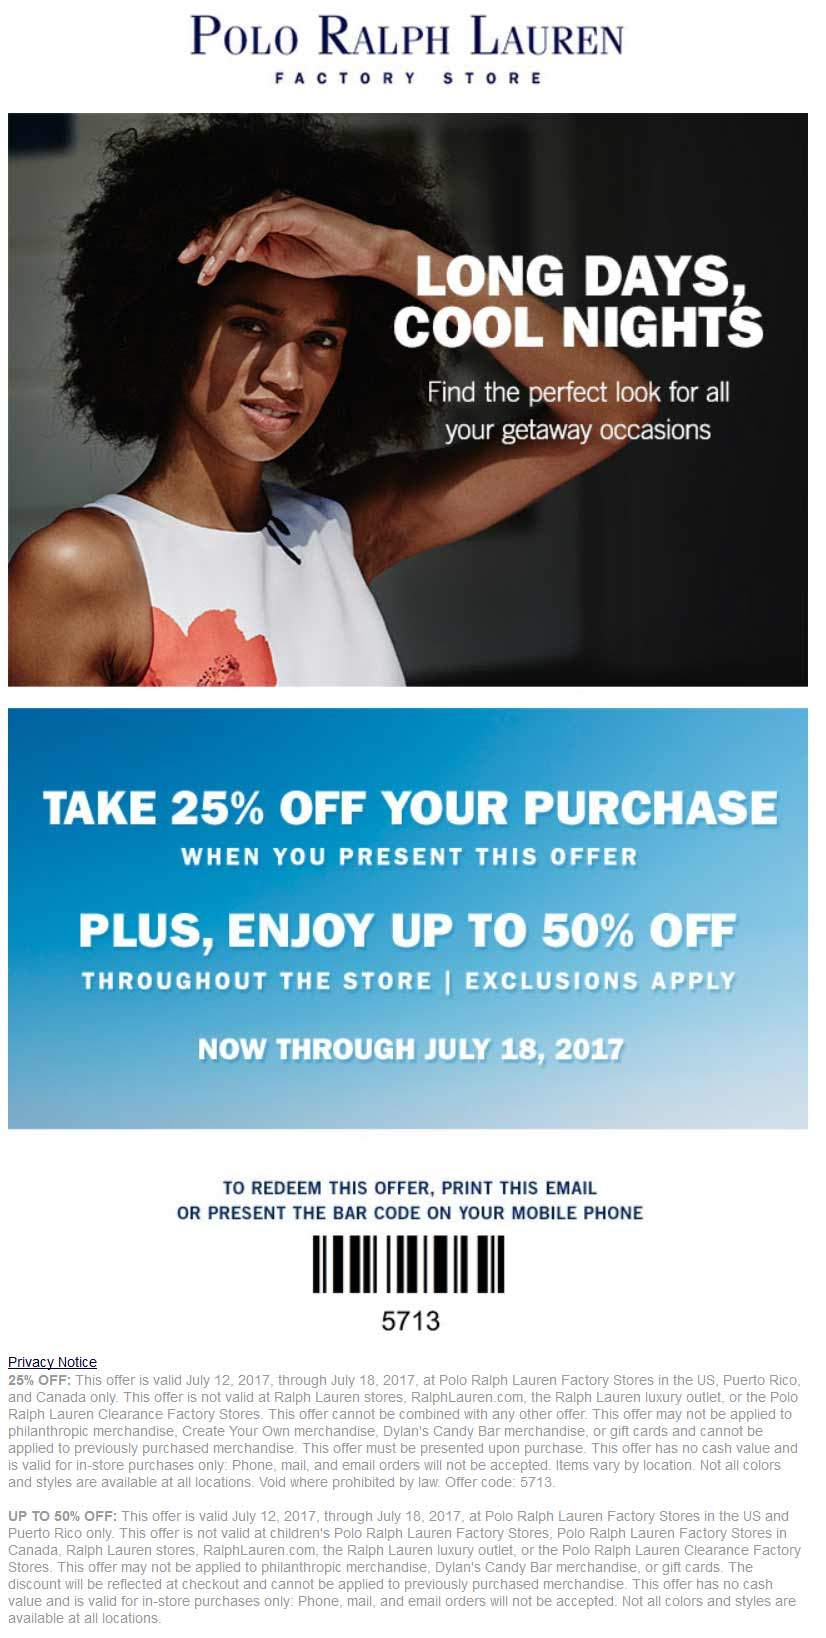 Polo Ralph Lauren Factory Coupon September 2017 25% off at Polo Ralph Lauren Factory stores